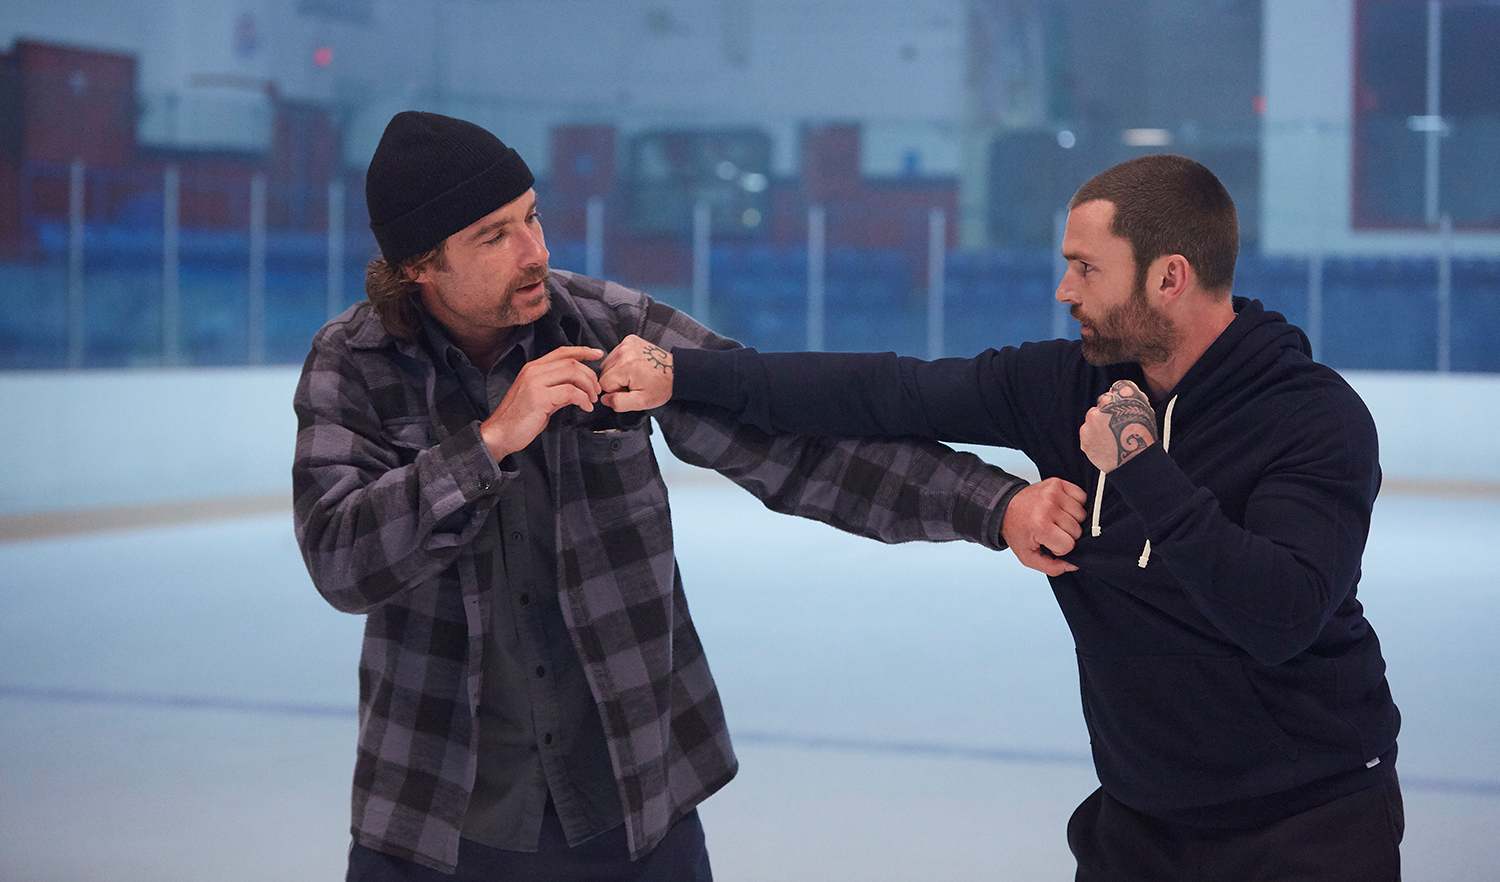 'Goon: Last of the Enforcers' is a rare comedy sequel that works